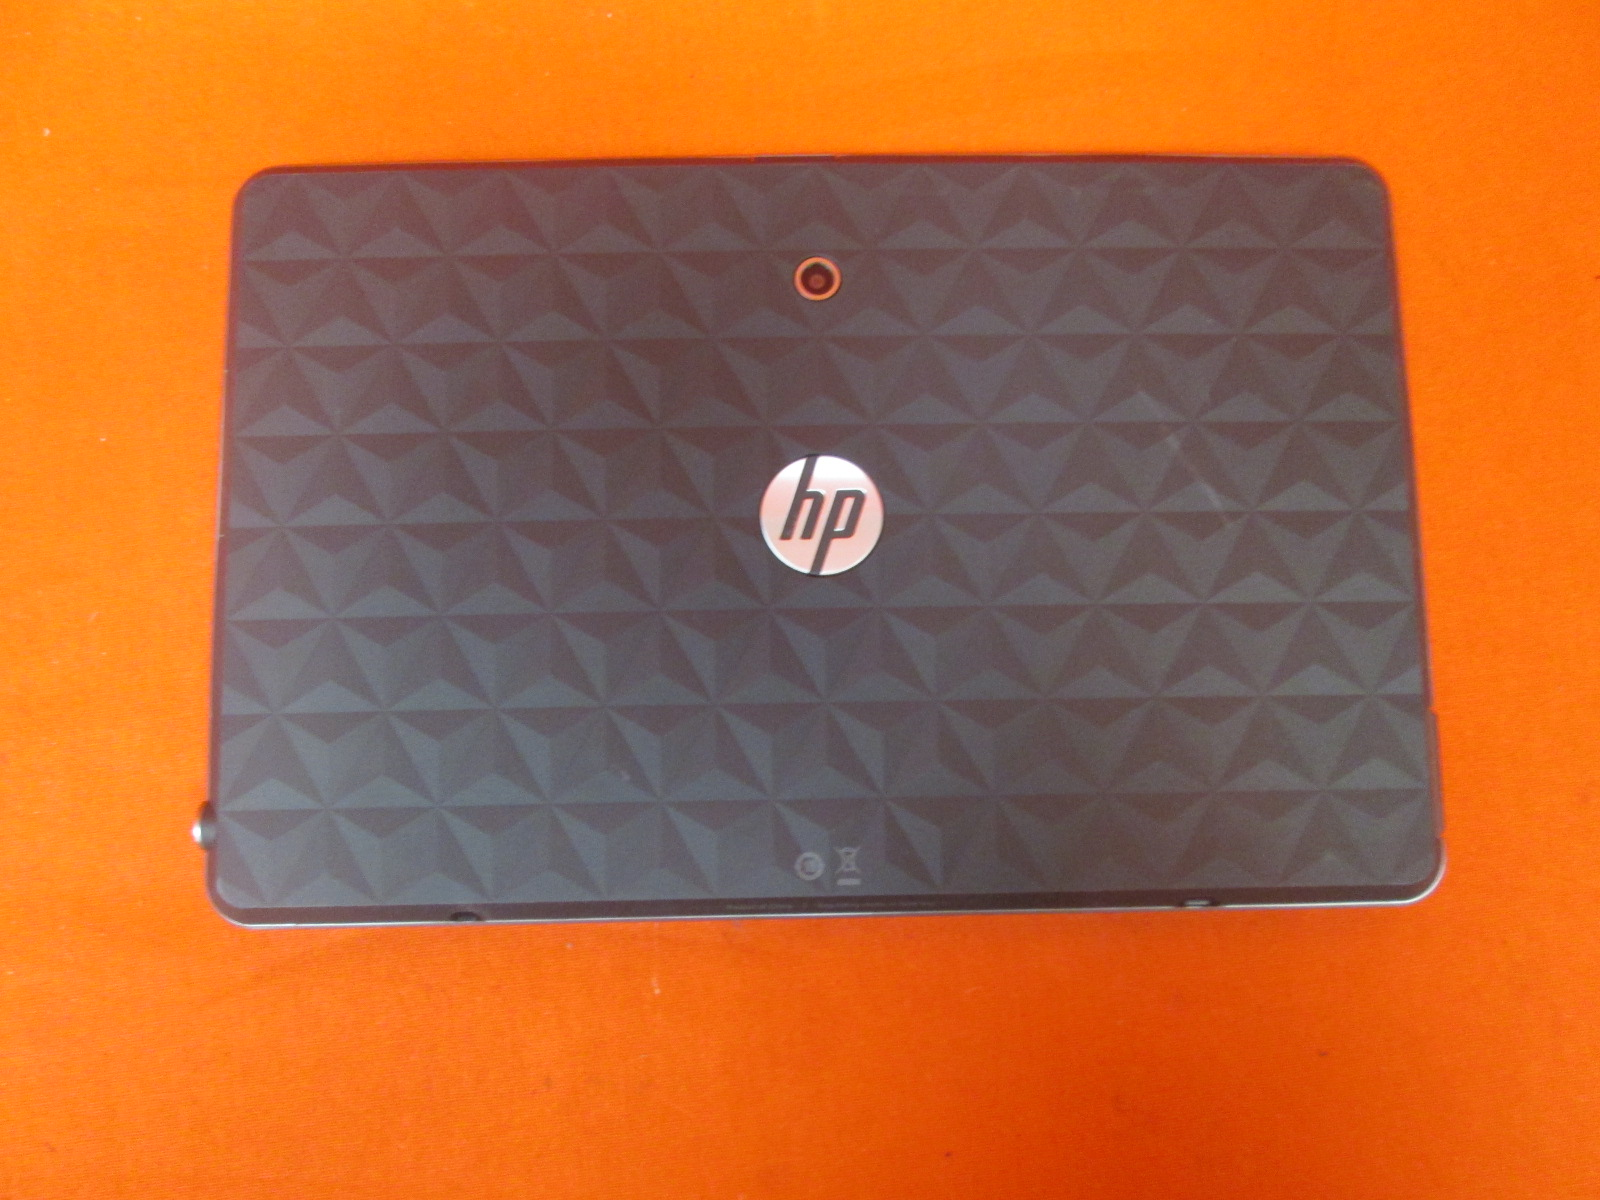 Image 2 of Broken HP Slate 500 Tablet PC Atom Z540 1.86GHZ 64GB SSD 2GB 8.9